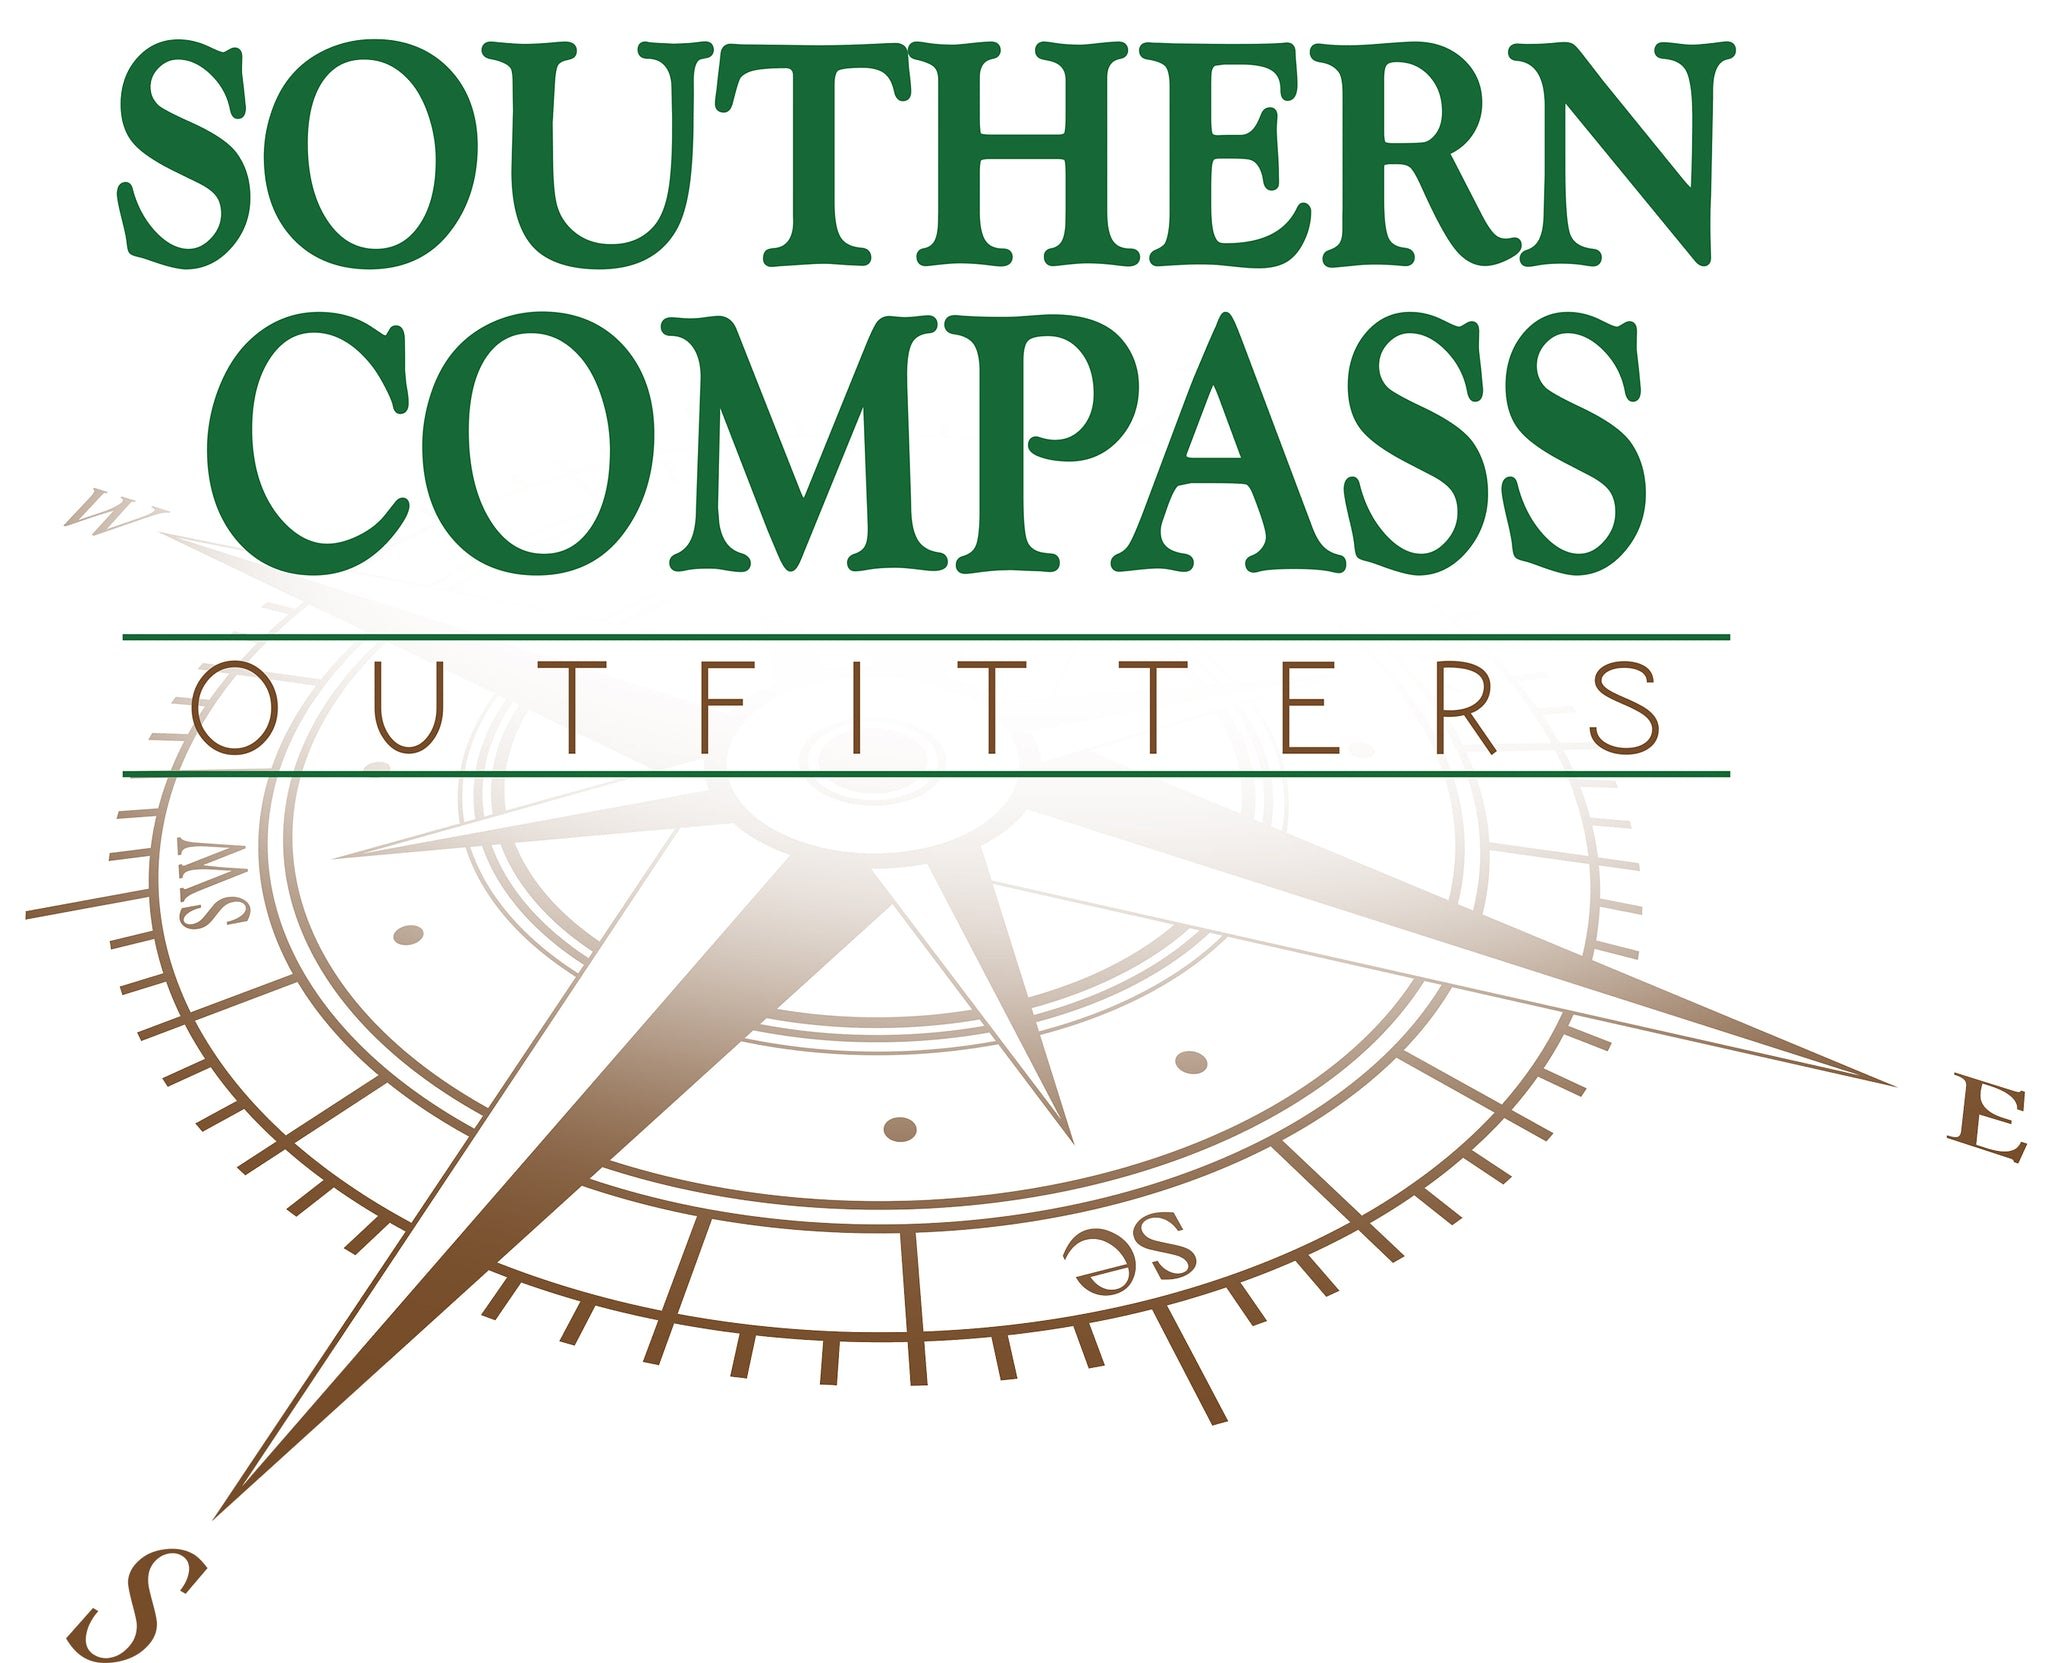 Southern Compass Outfitters Gift Card